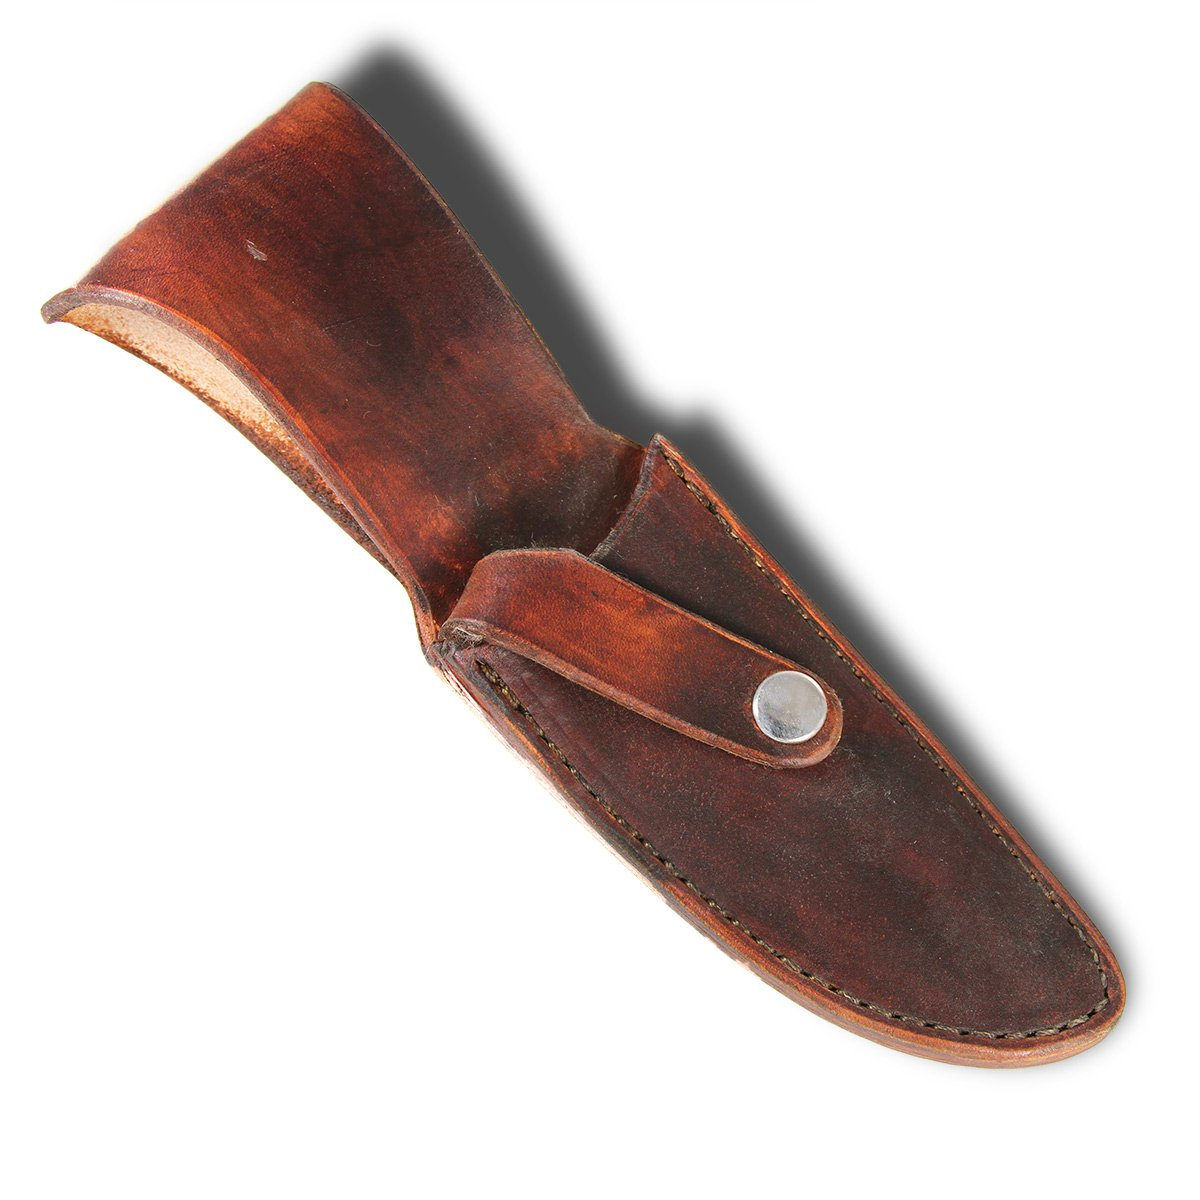 Finished Sheath Style #8 - Brown Leather - for knives with blades up to 1 1/4'' x 4 1/4''